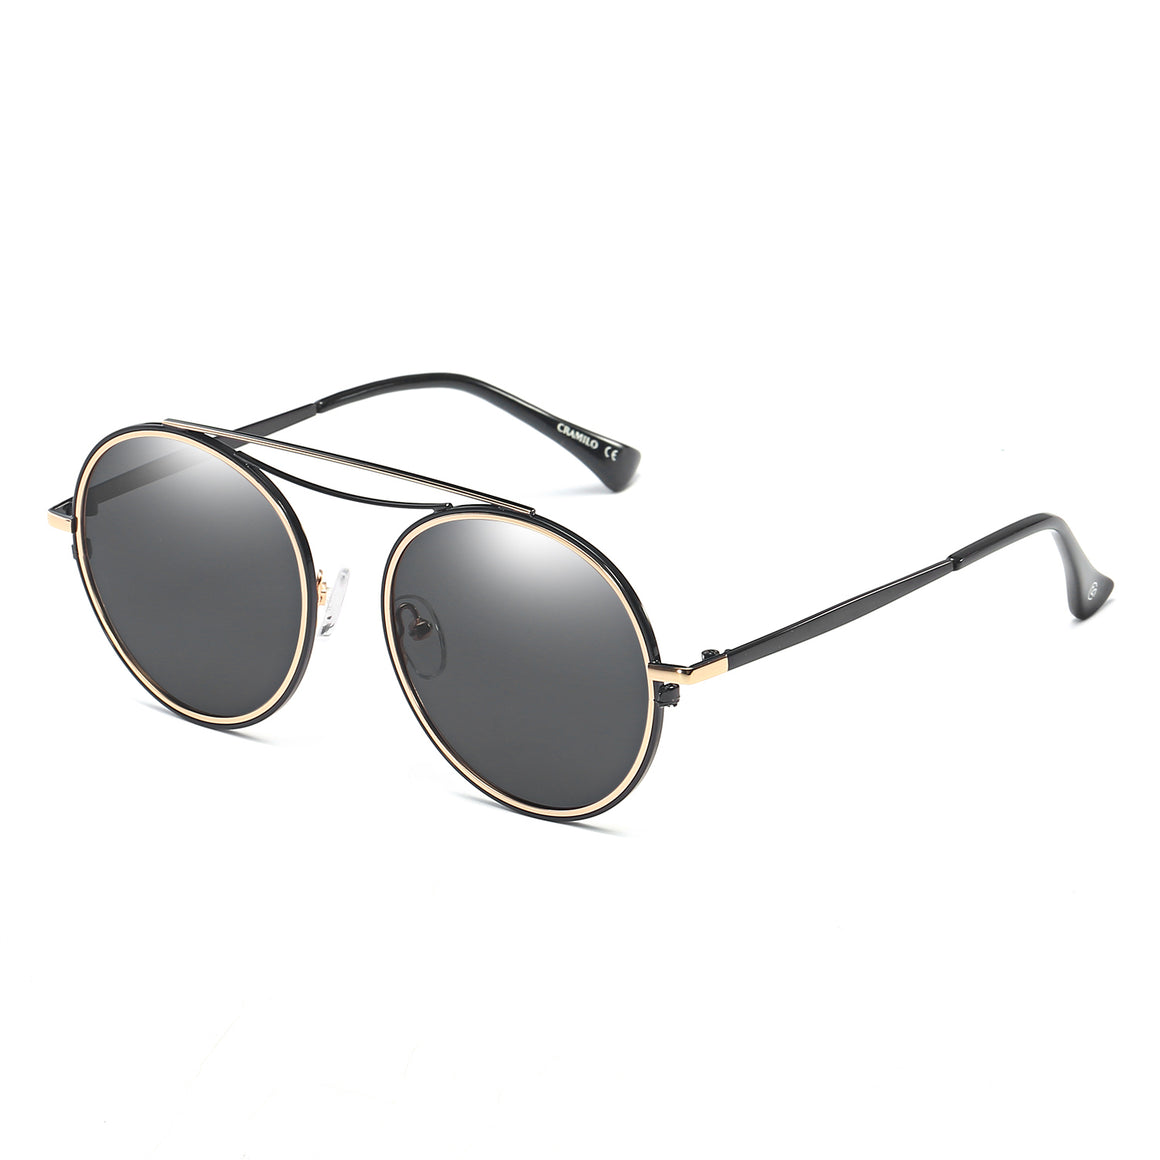 FAIRFAX | CA10 - Polarized Circle Round Brow-Bar Fashion Sunglasses - Cramilo Eyewear - Stylish Trendy Affordable Sunglasses Clear Glasses Eye Wear Fashion